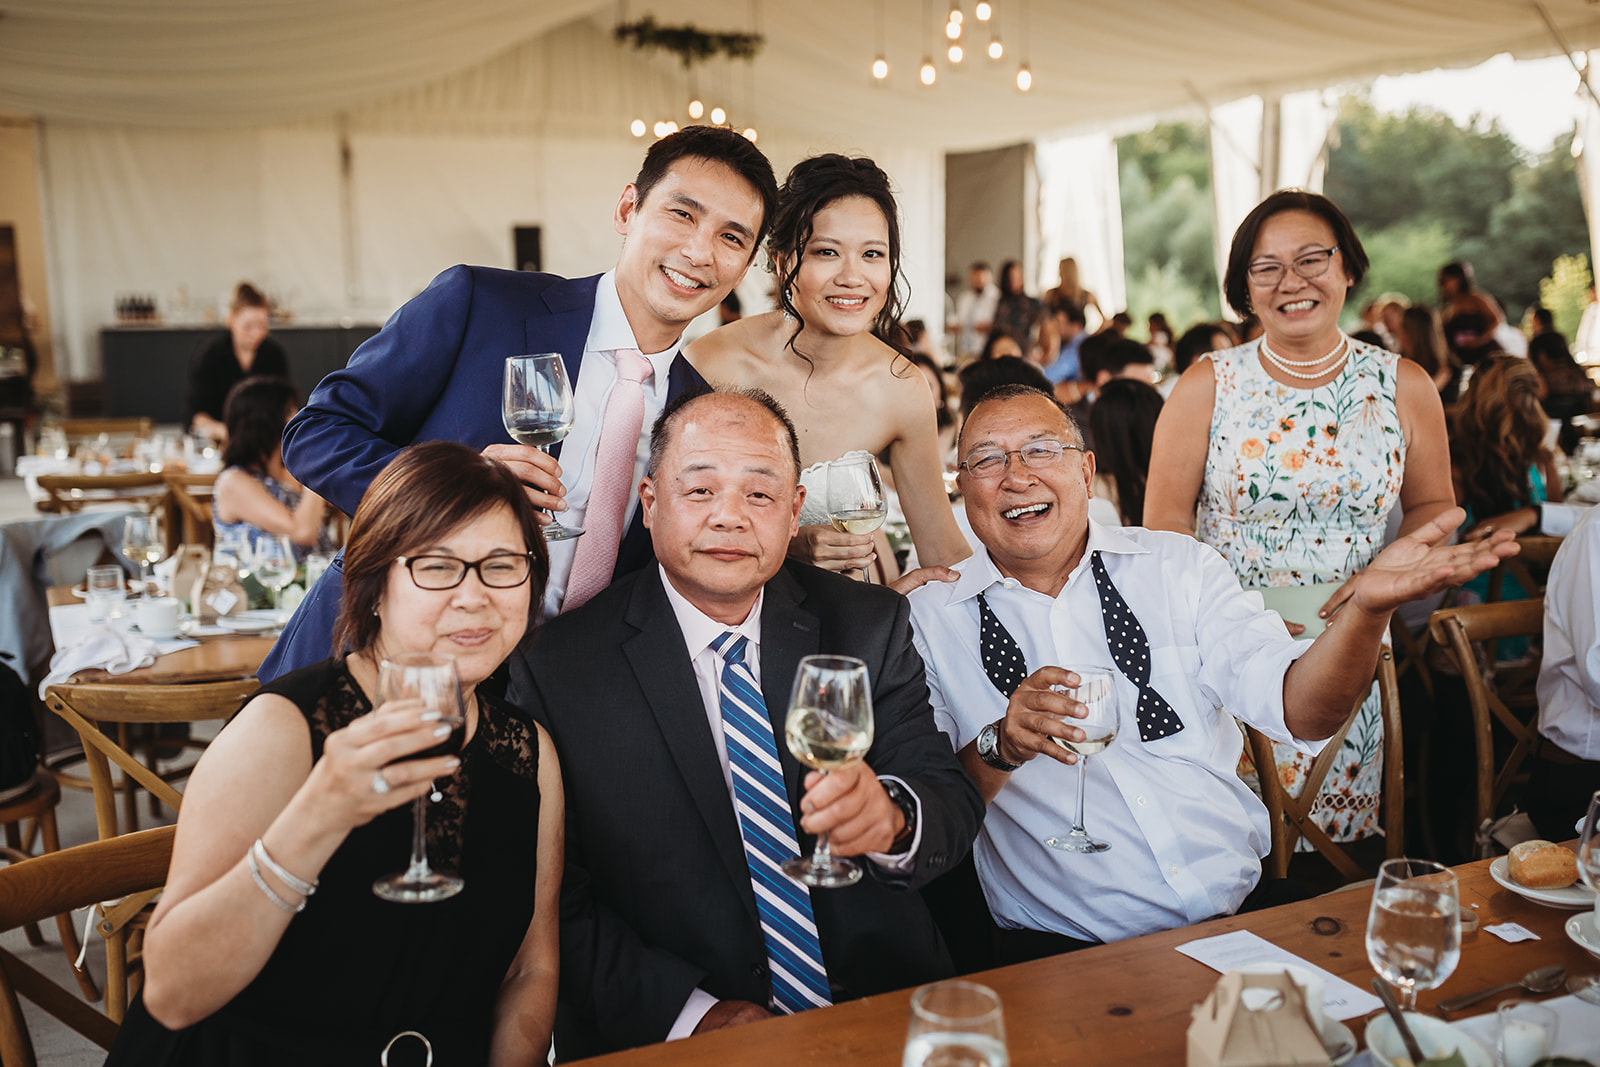 Do you Need to Have a Receiving Line at a Wedding